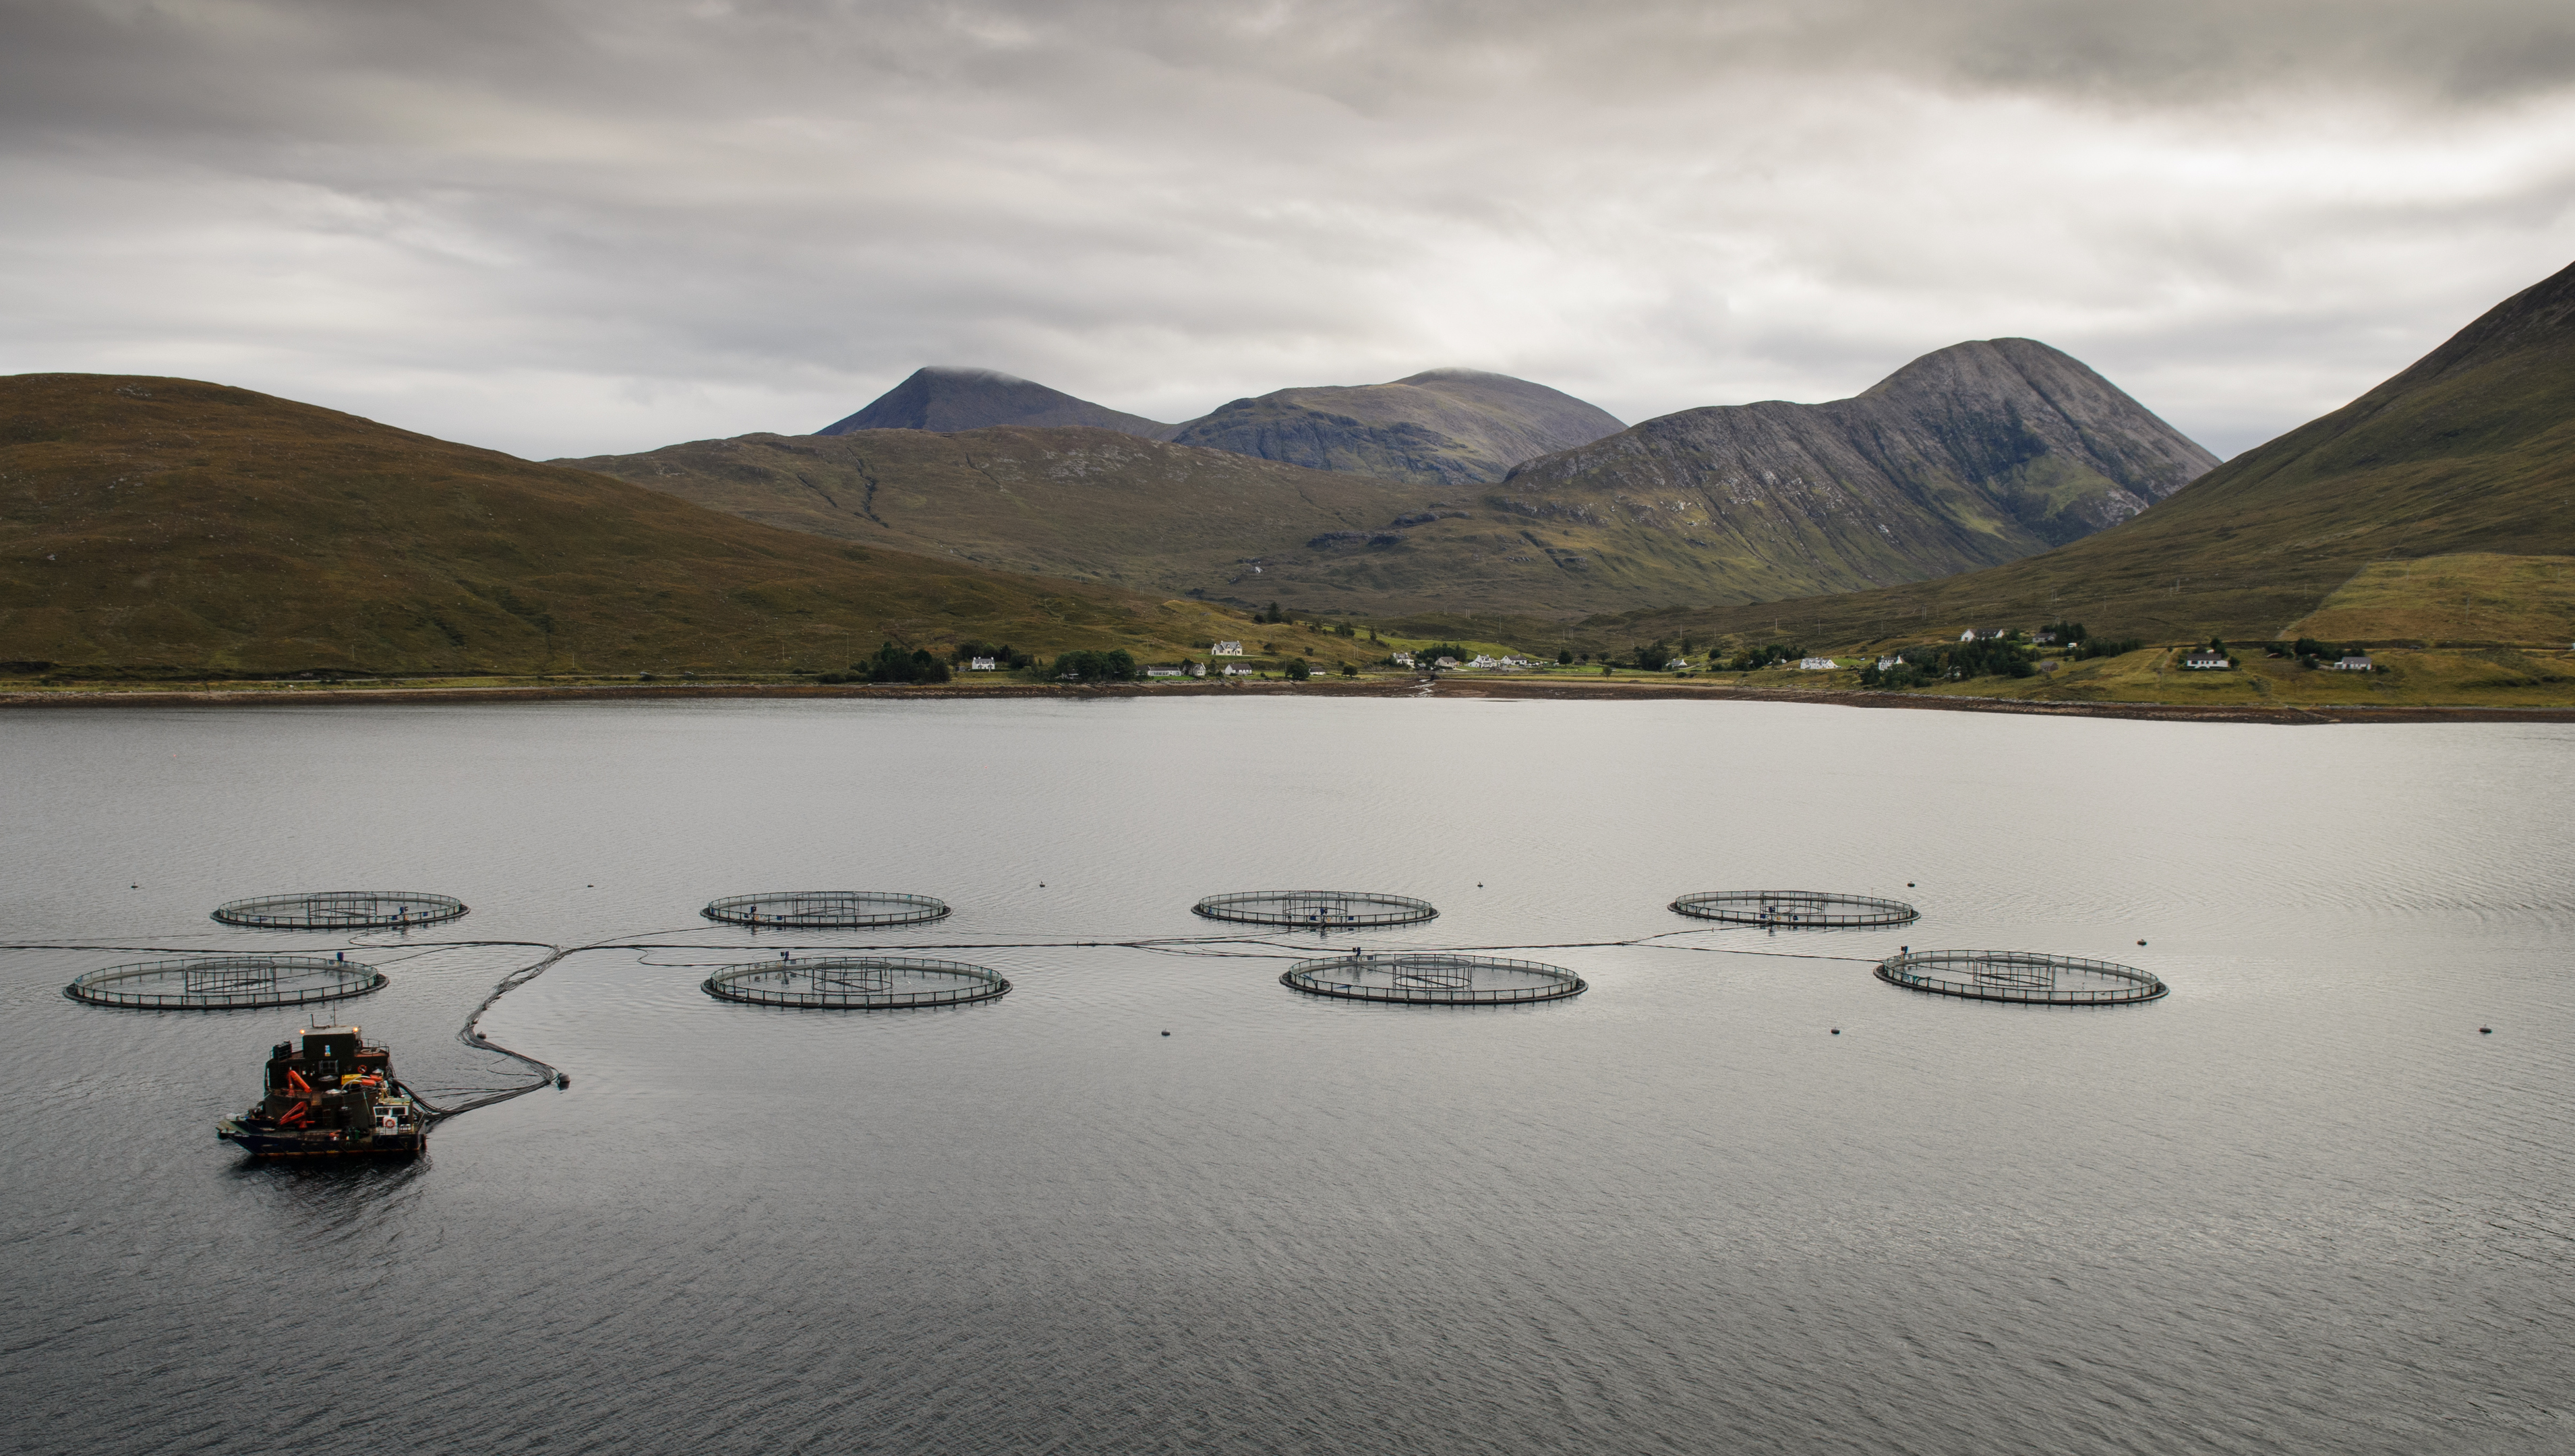 Fish farming is one of Scotland's most lucrative industries, but its environmental impact is coming under fire.